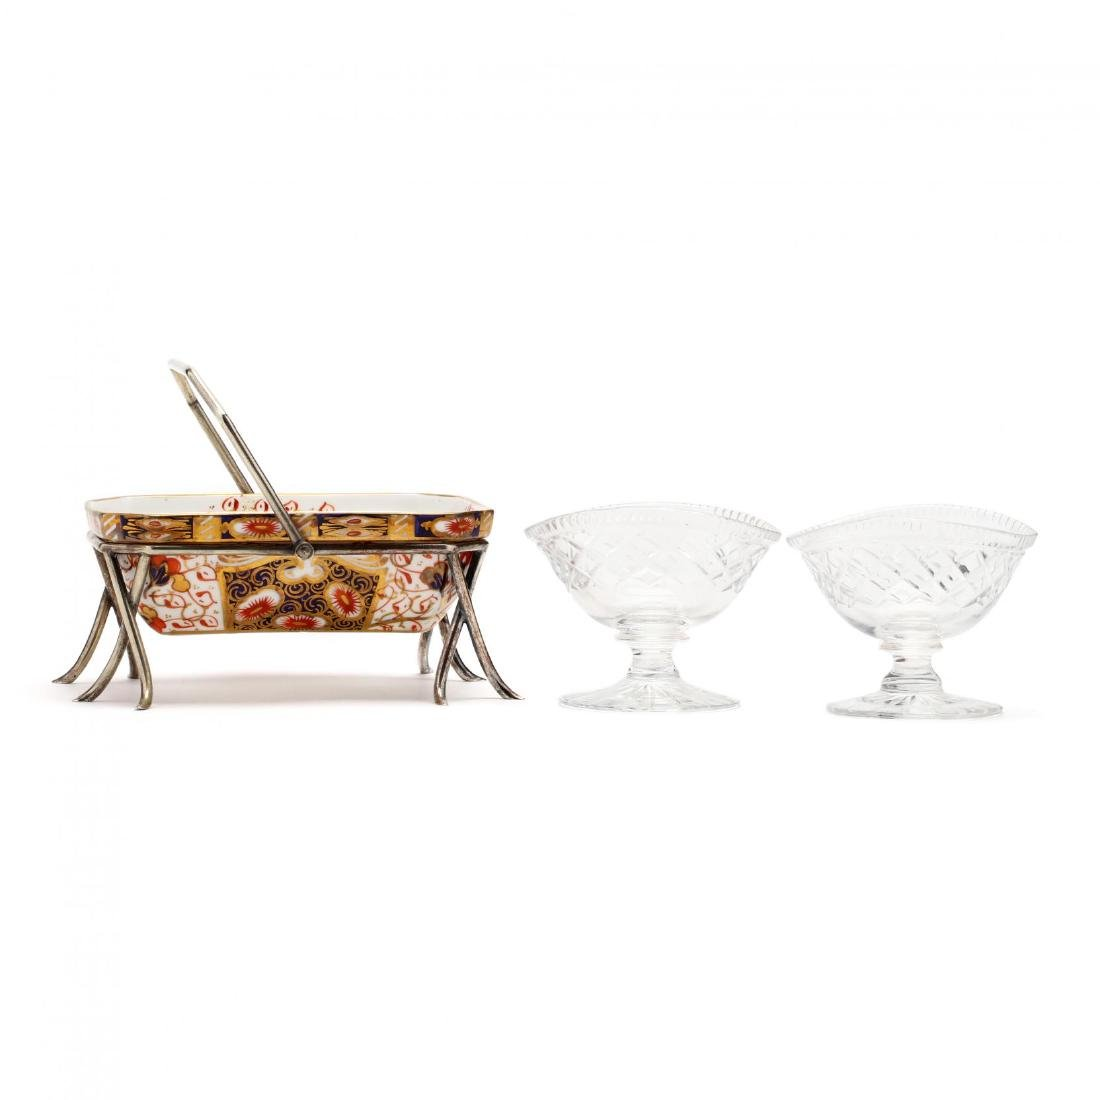 Three Antique English Table Accessories